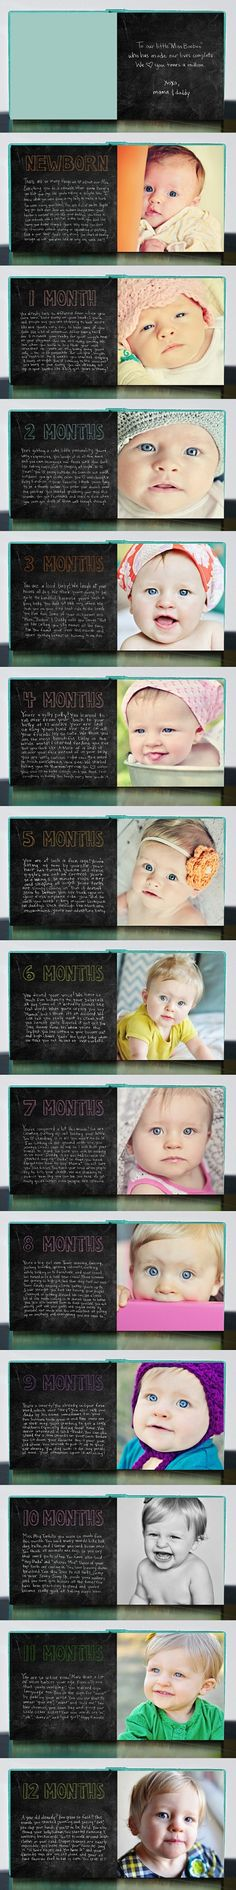 Baby's First Year - Photo Book